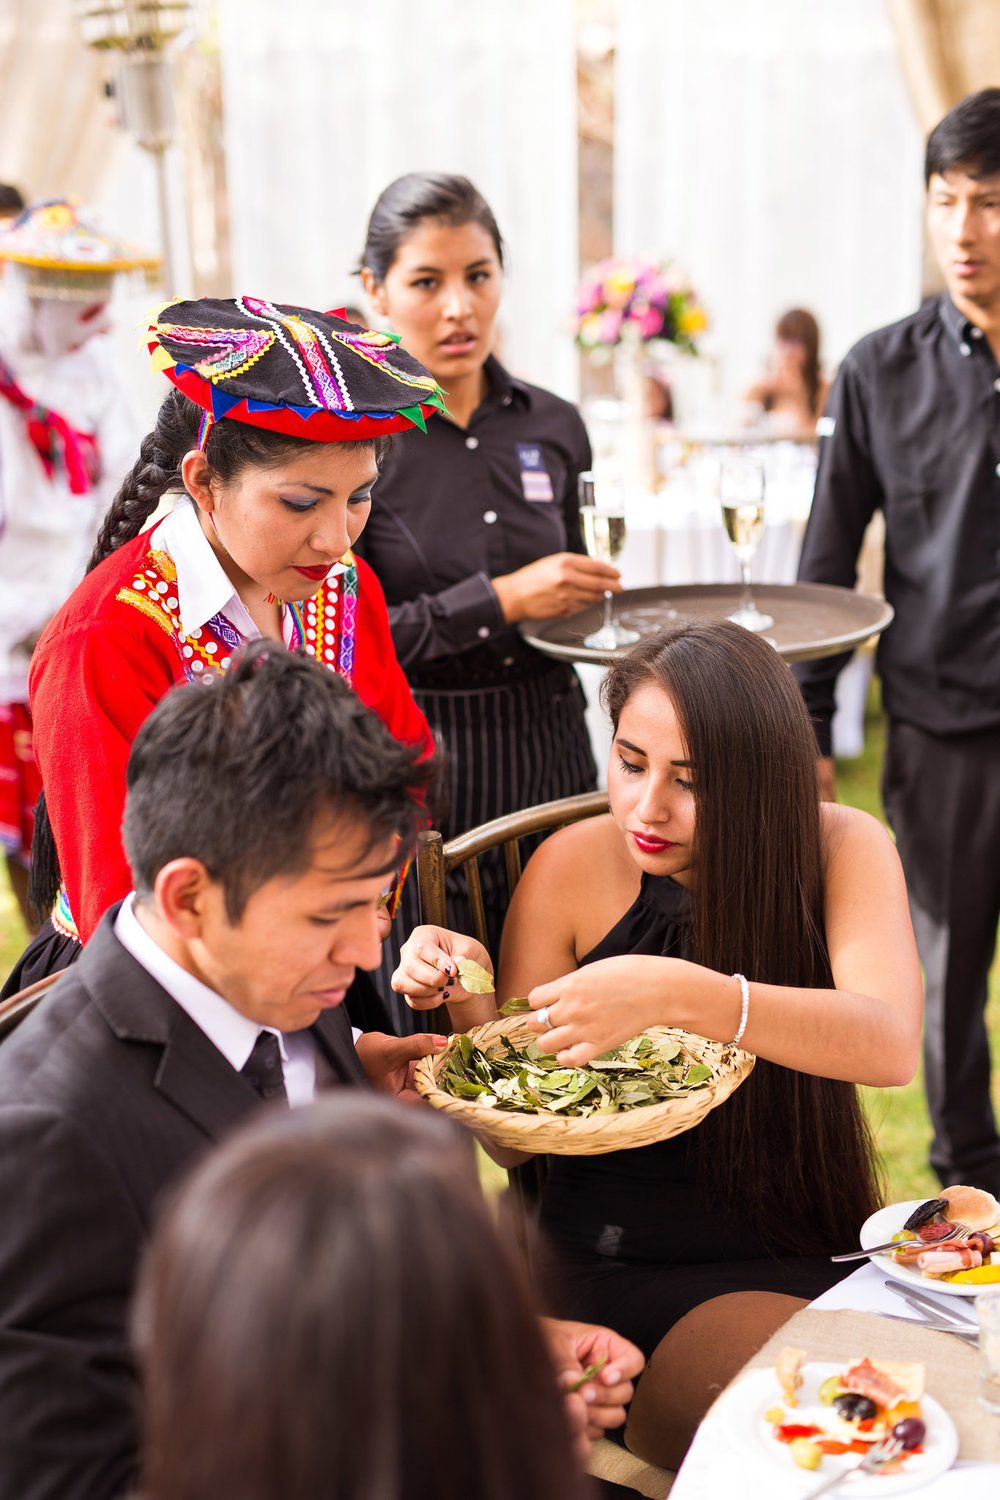 Wedding-Travellers-Destination-Wedding-Peru-Cusco-Hacienda-Sarapampa-Sacred-Valley-traditional-andean-ceremony-coca-leaf